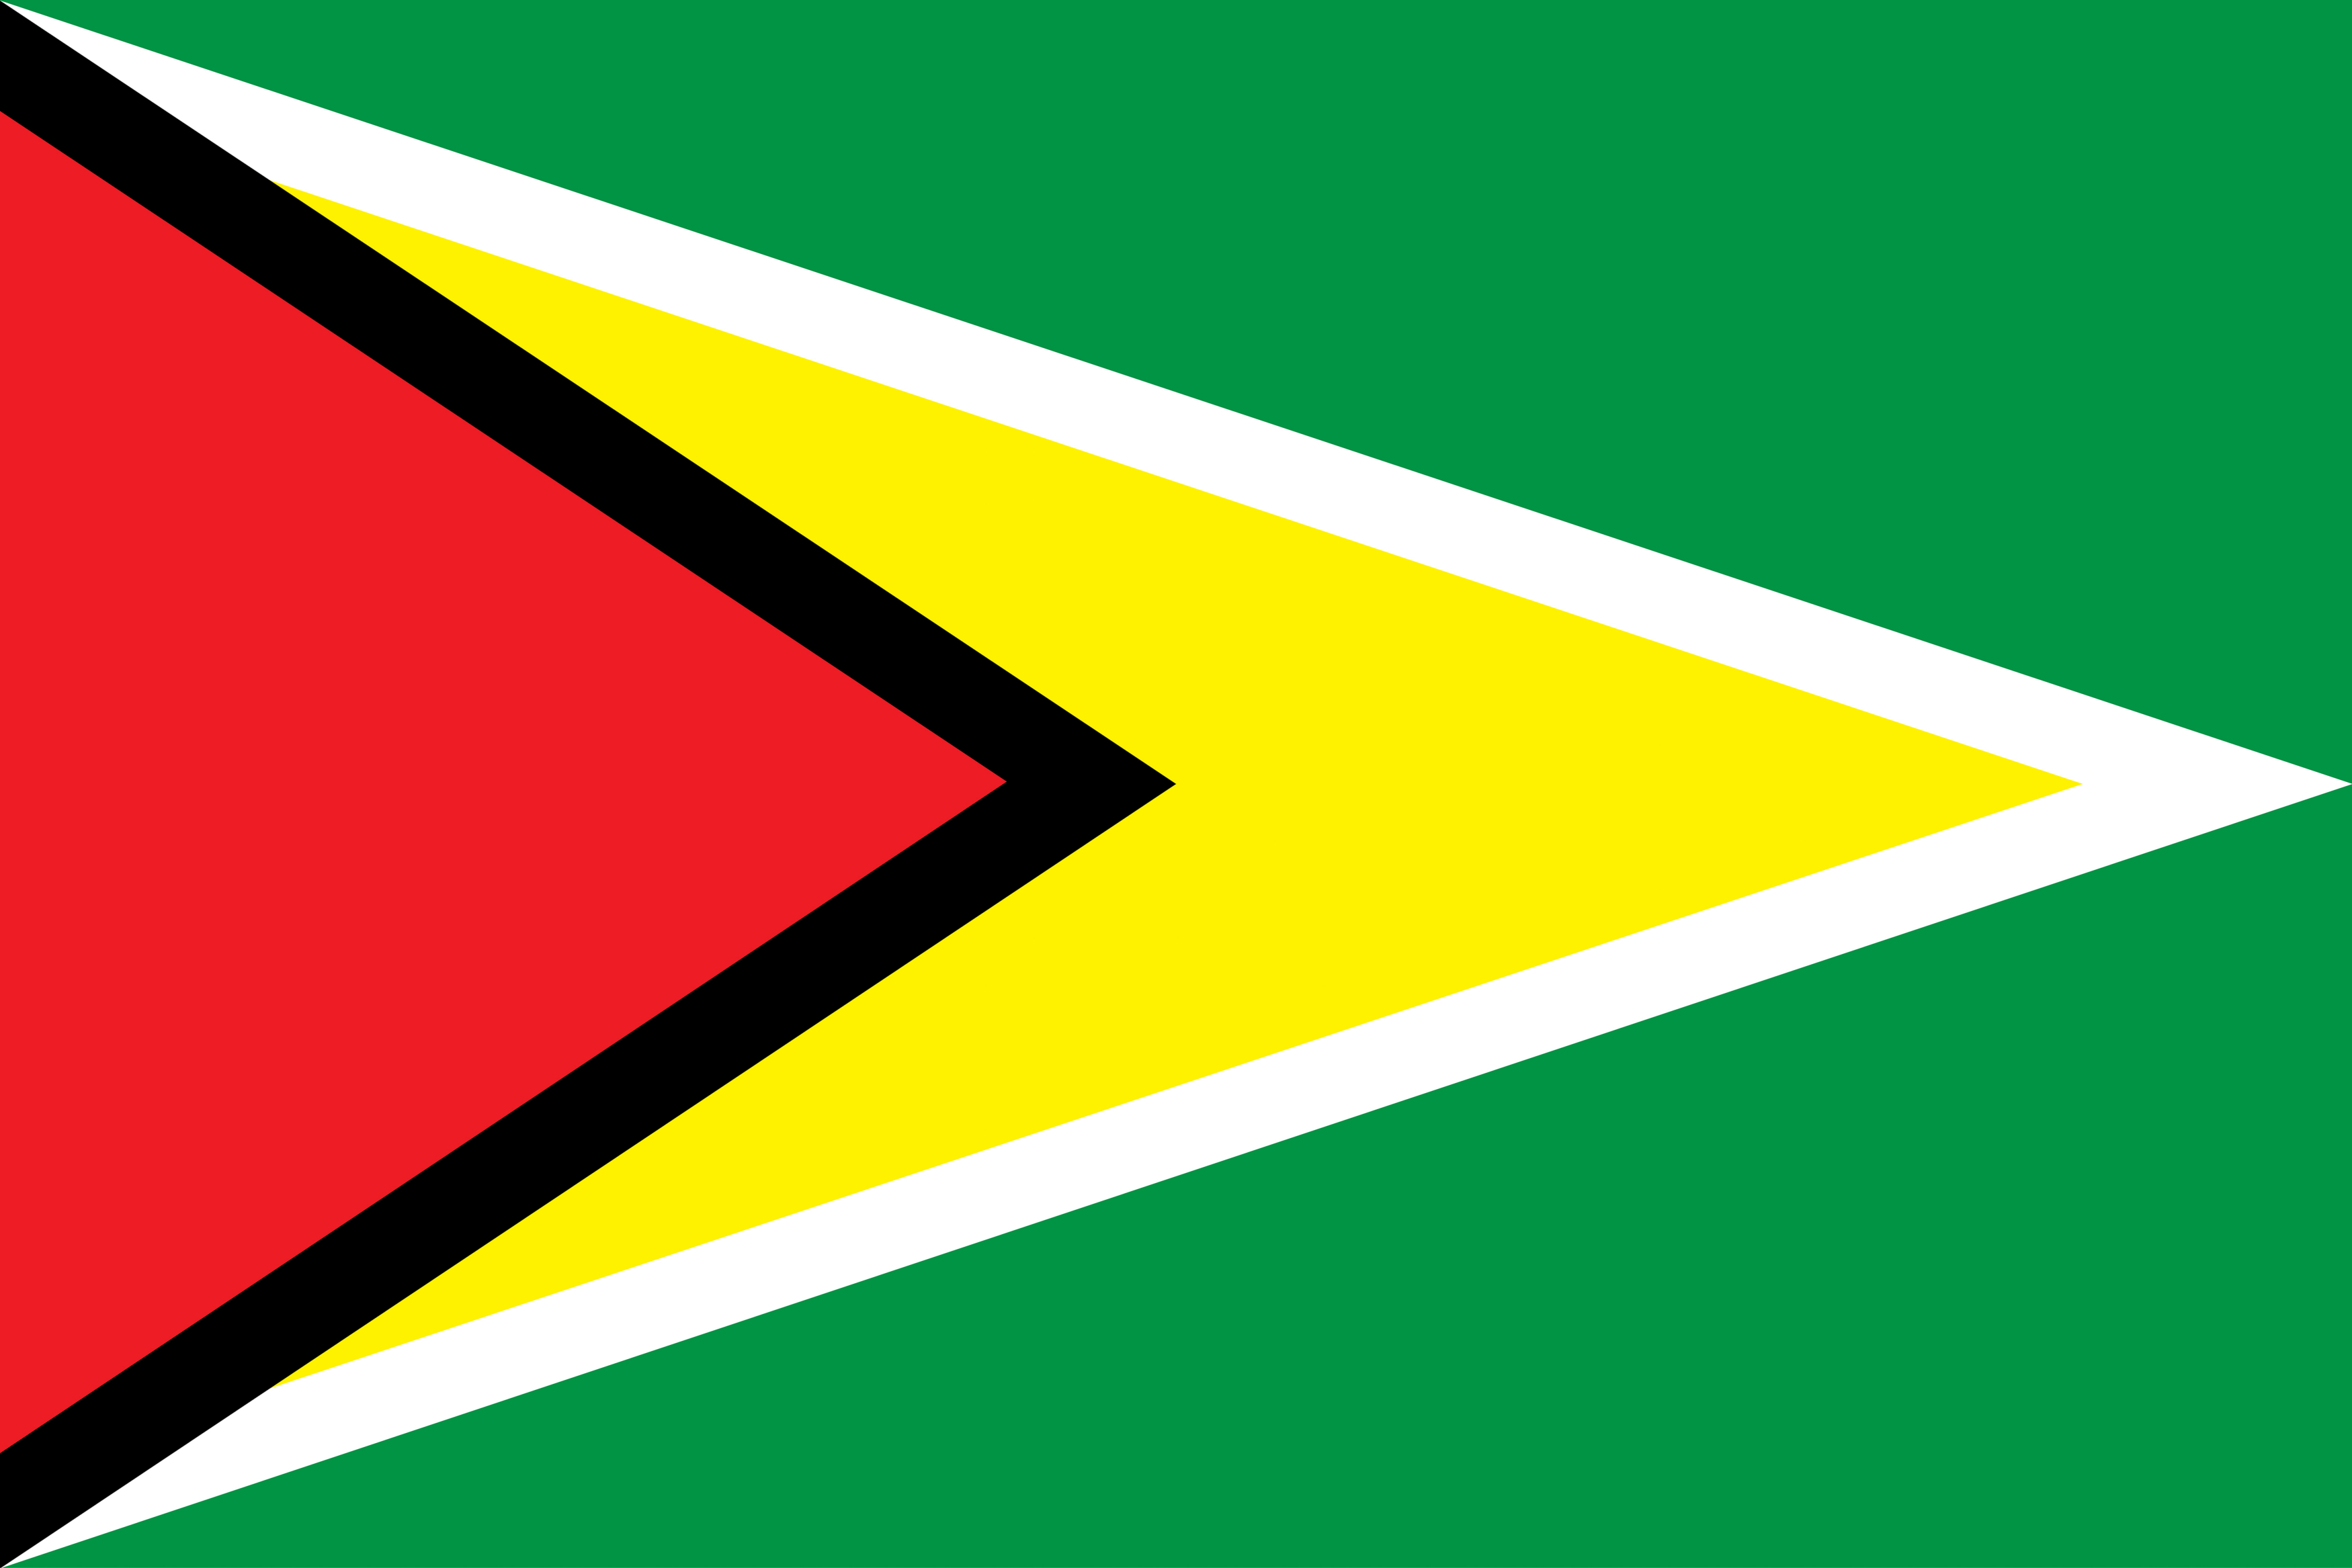 The official flag of Guyana.